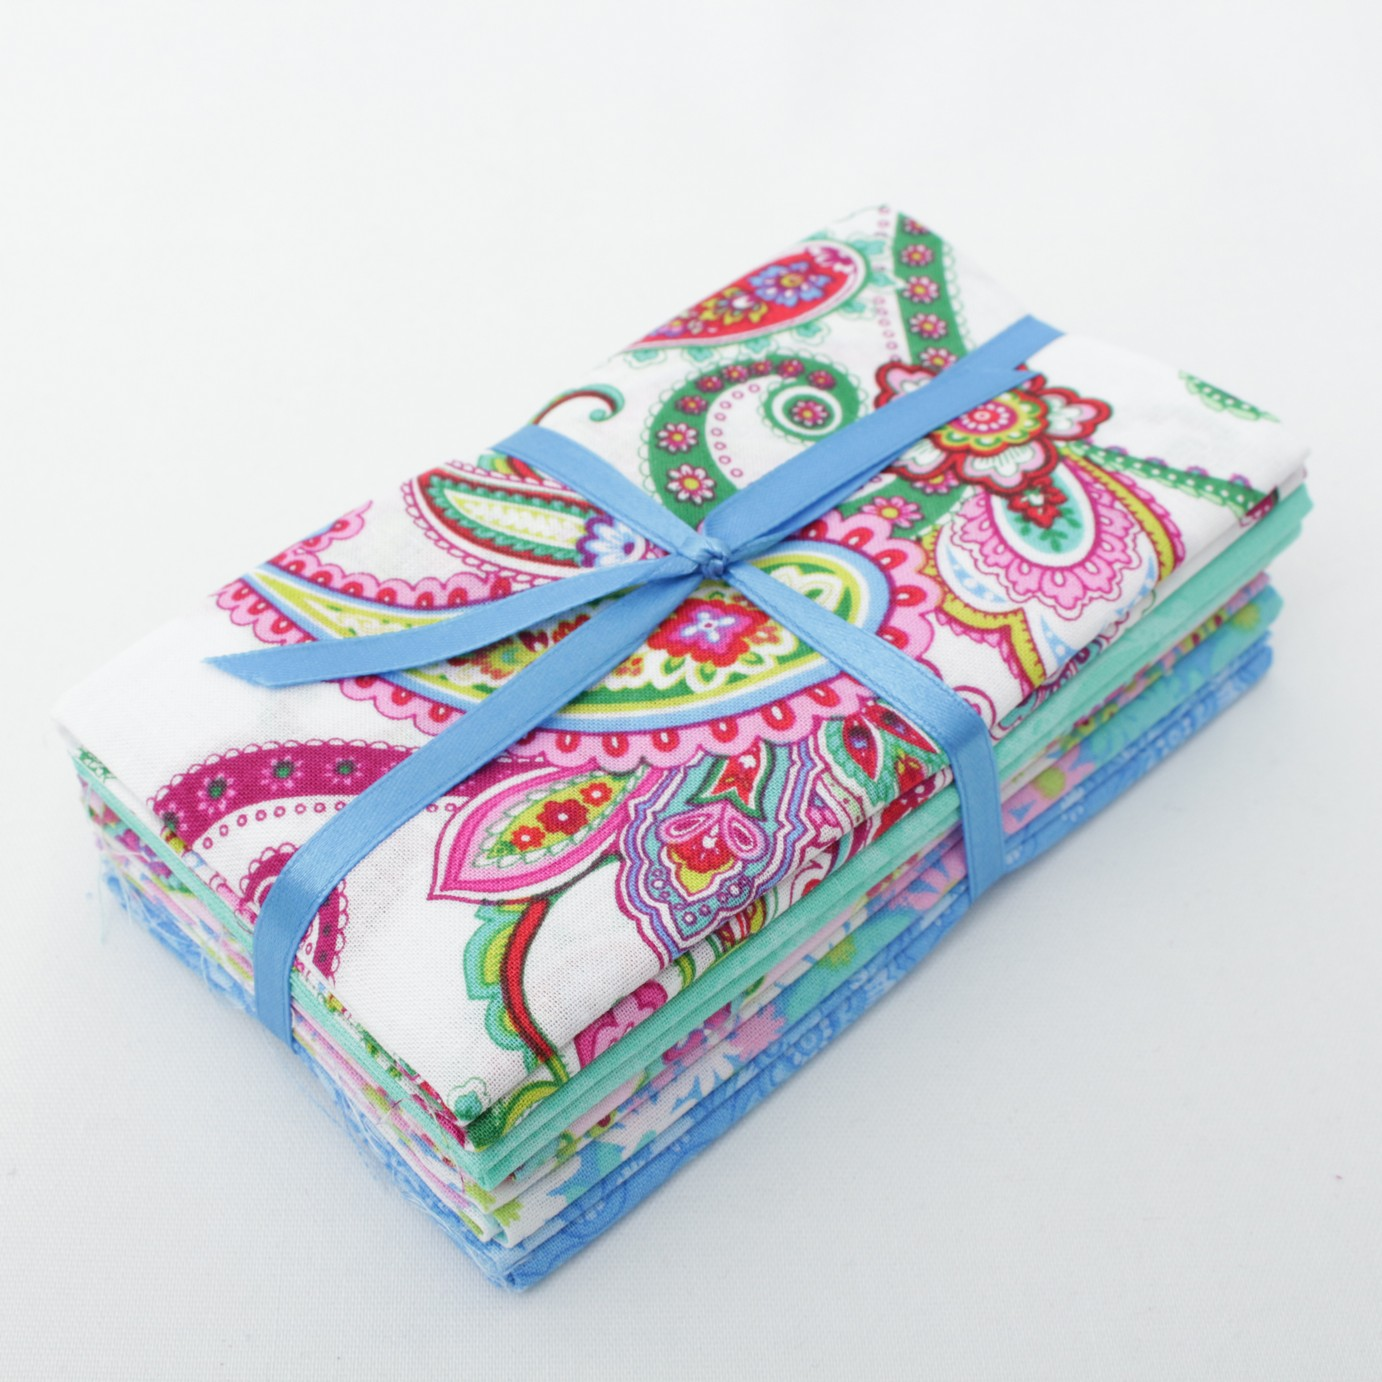 Fabric Editions Punch of Paisley Fat Quarter | I Want Fabric